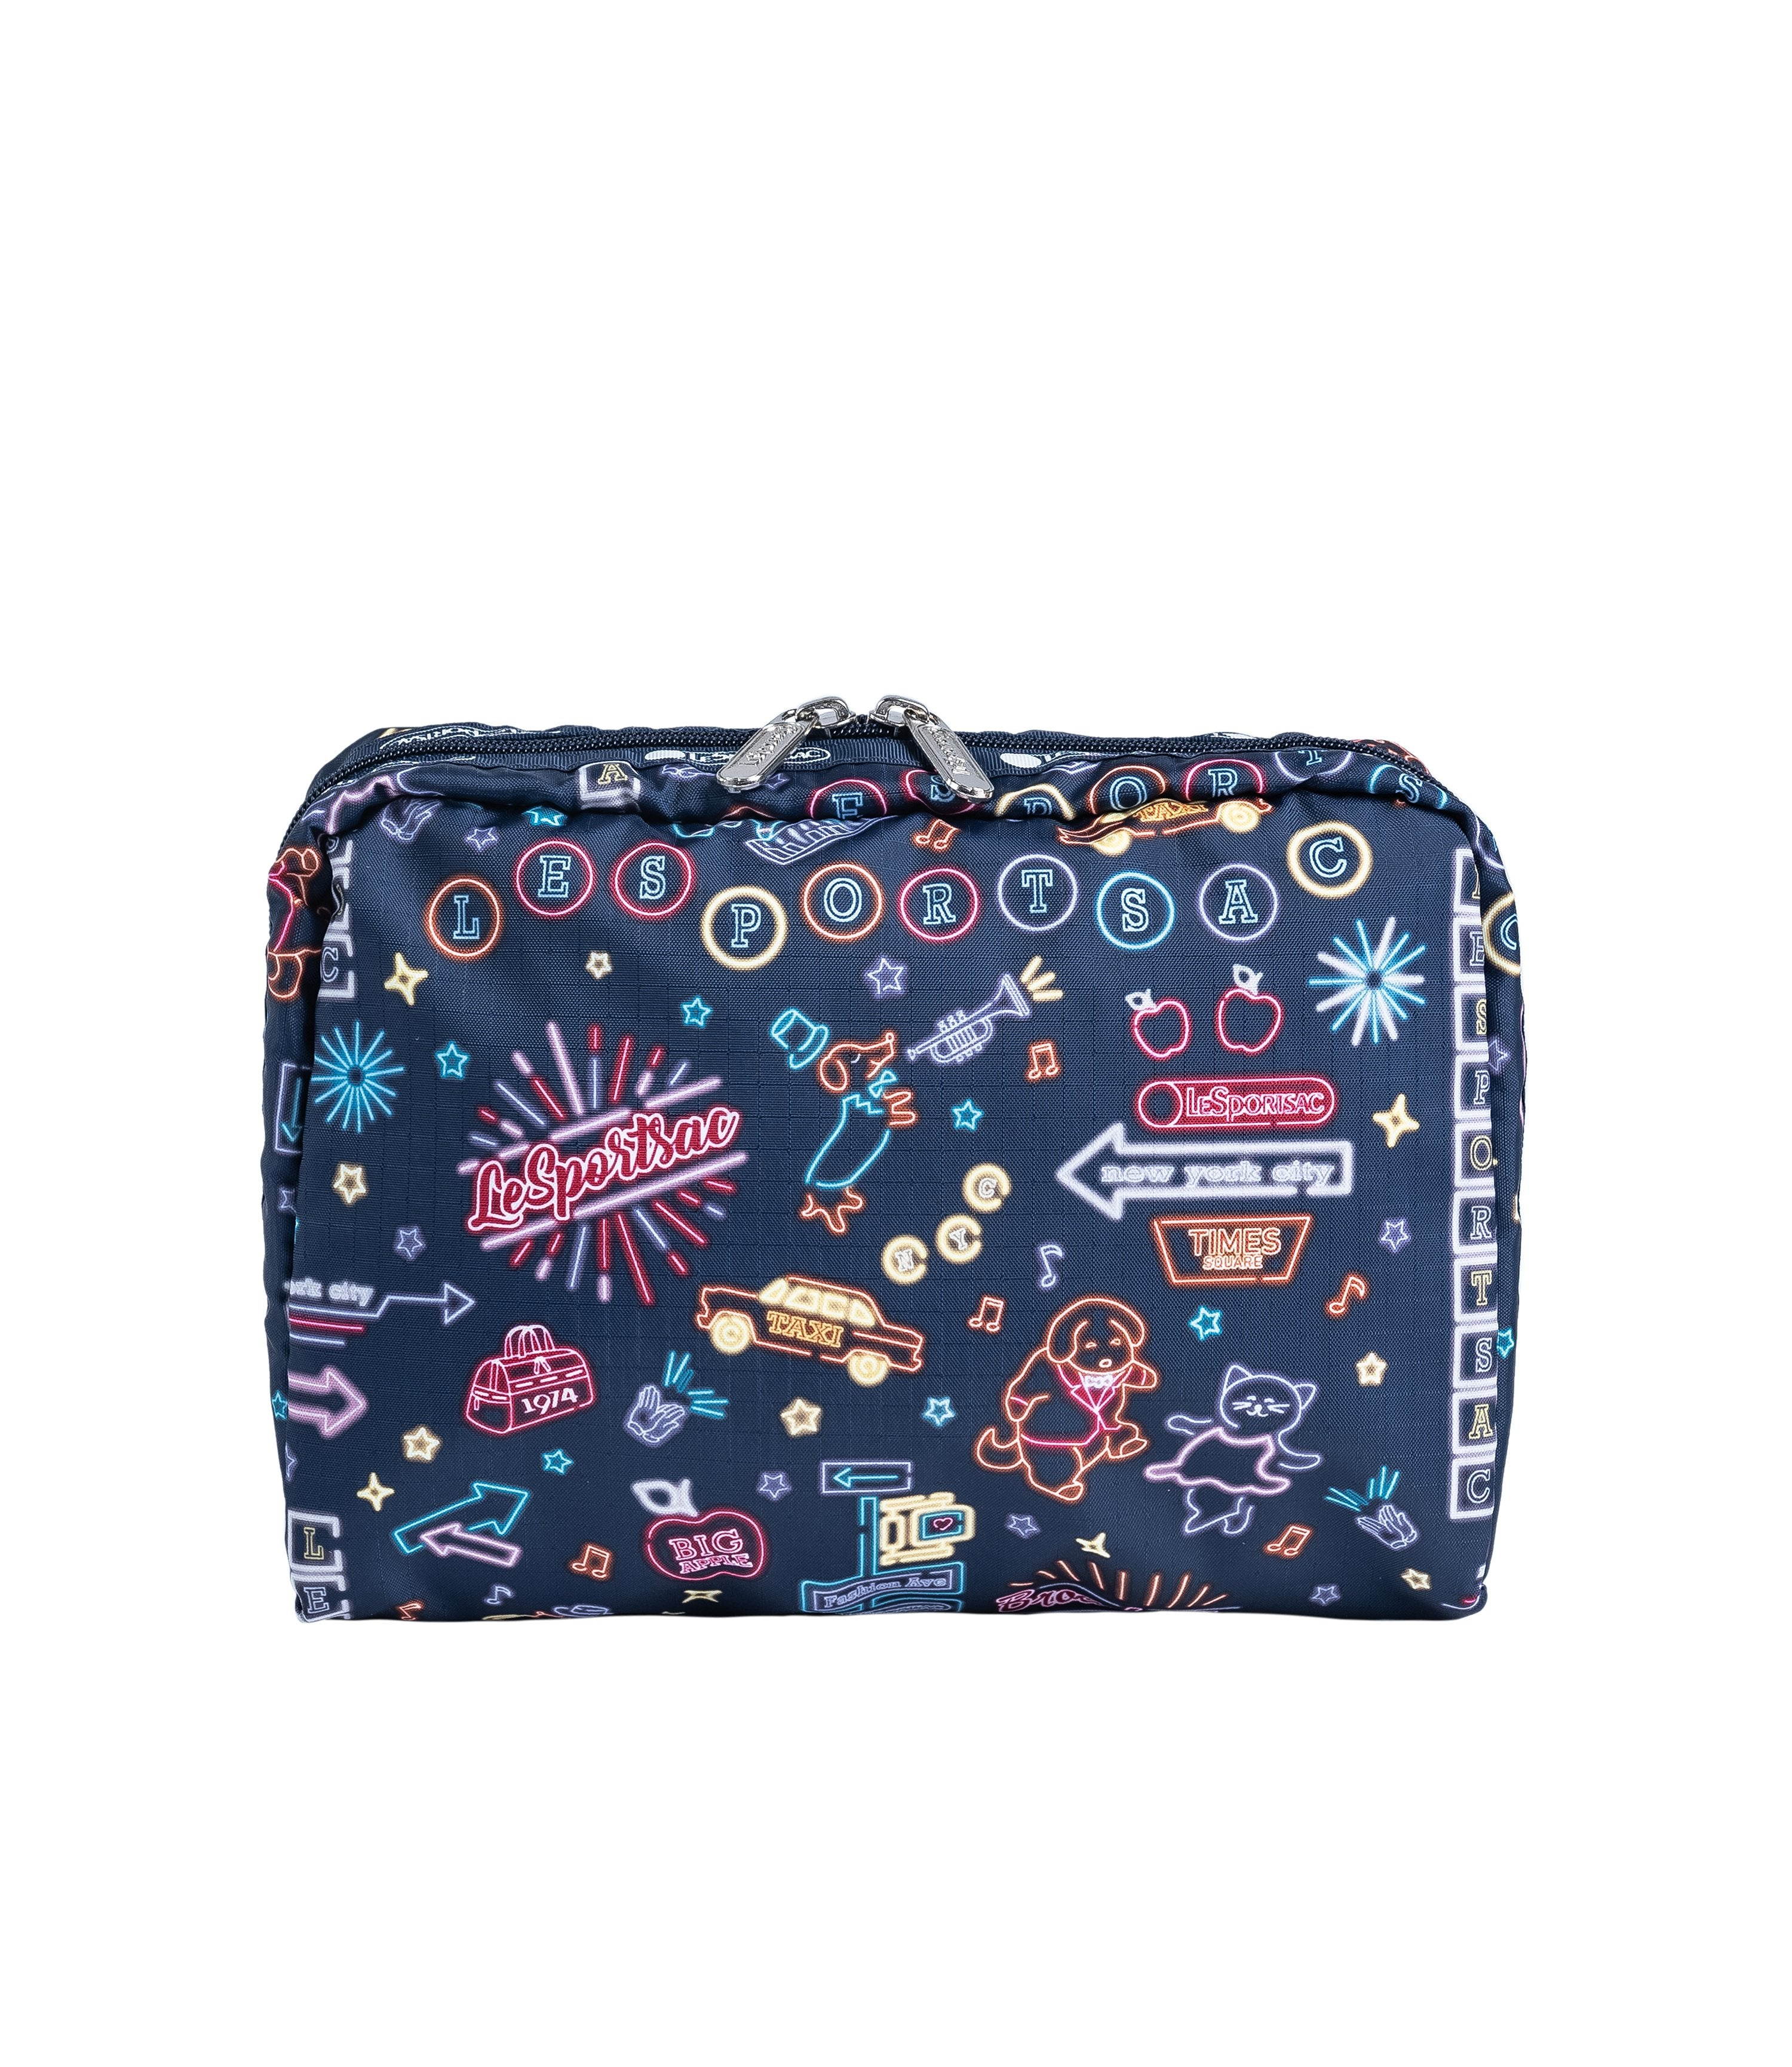 LeSportsac - Accessories - XL Rectangular Cosmetic - Neon Nights print